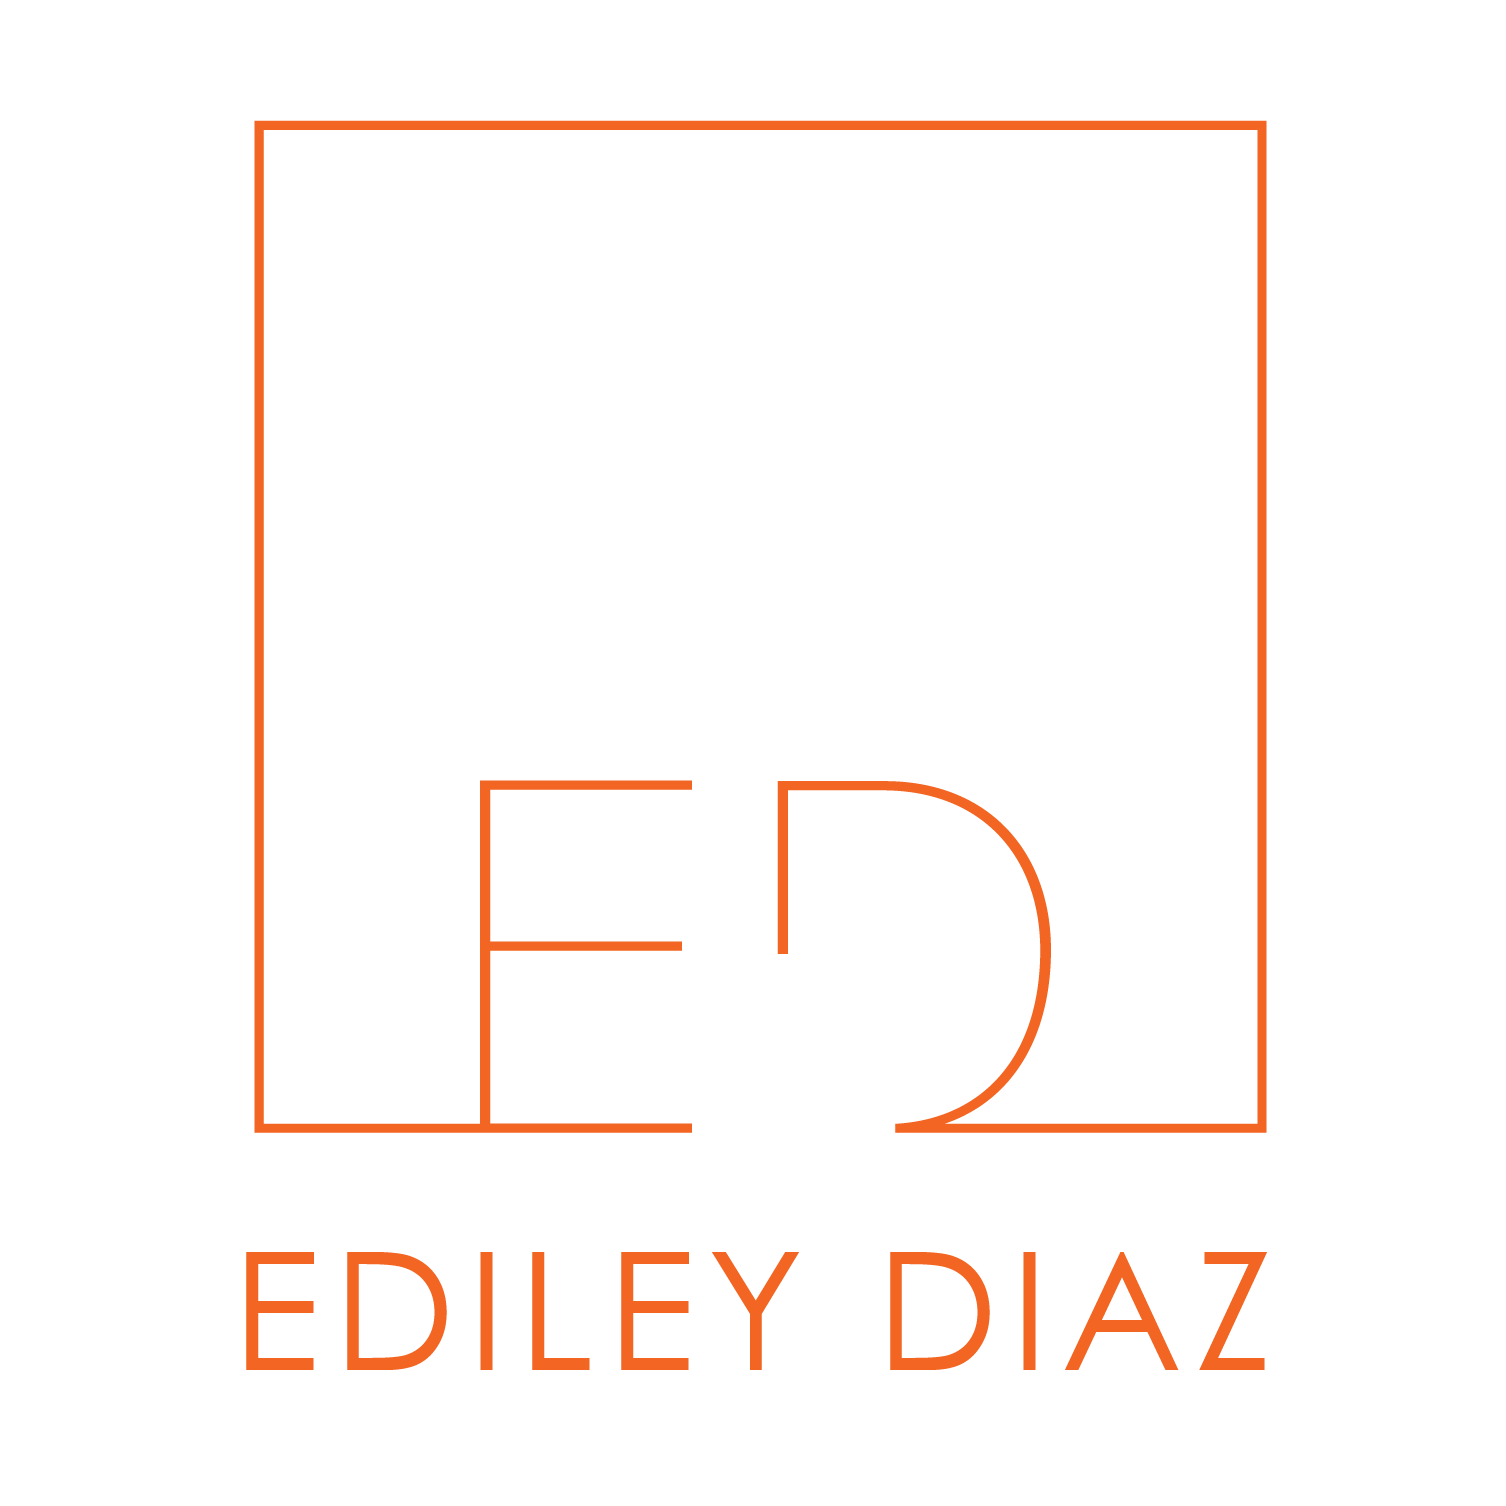 Ediley Diaz